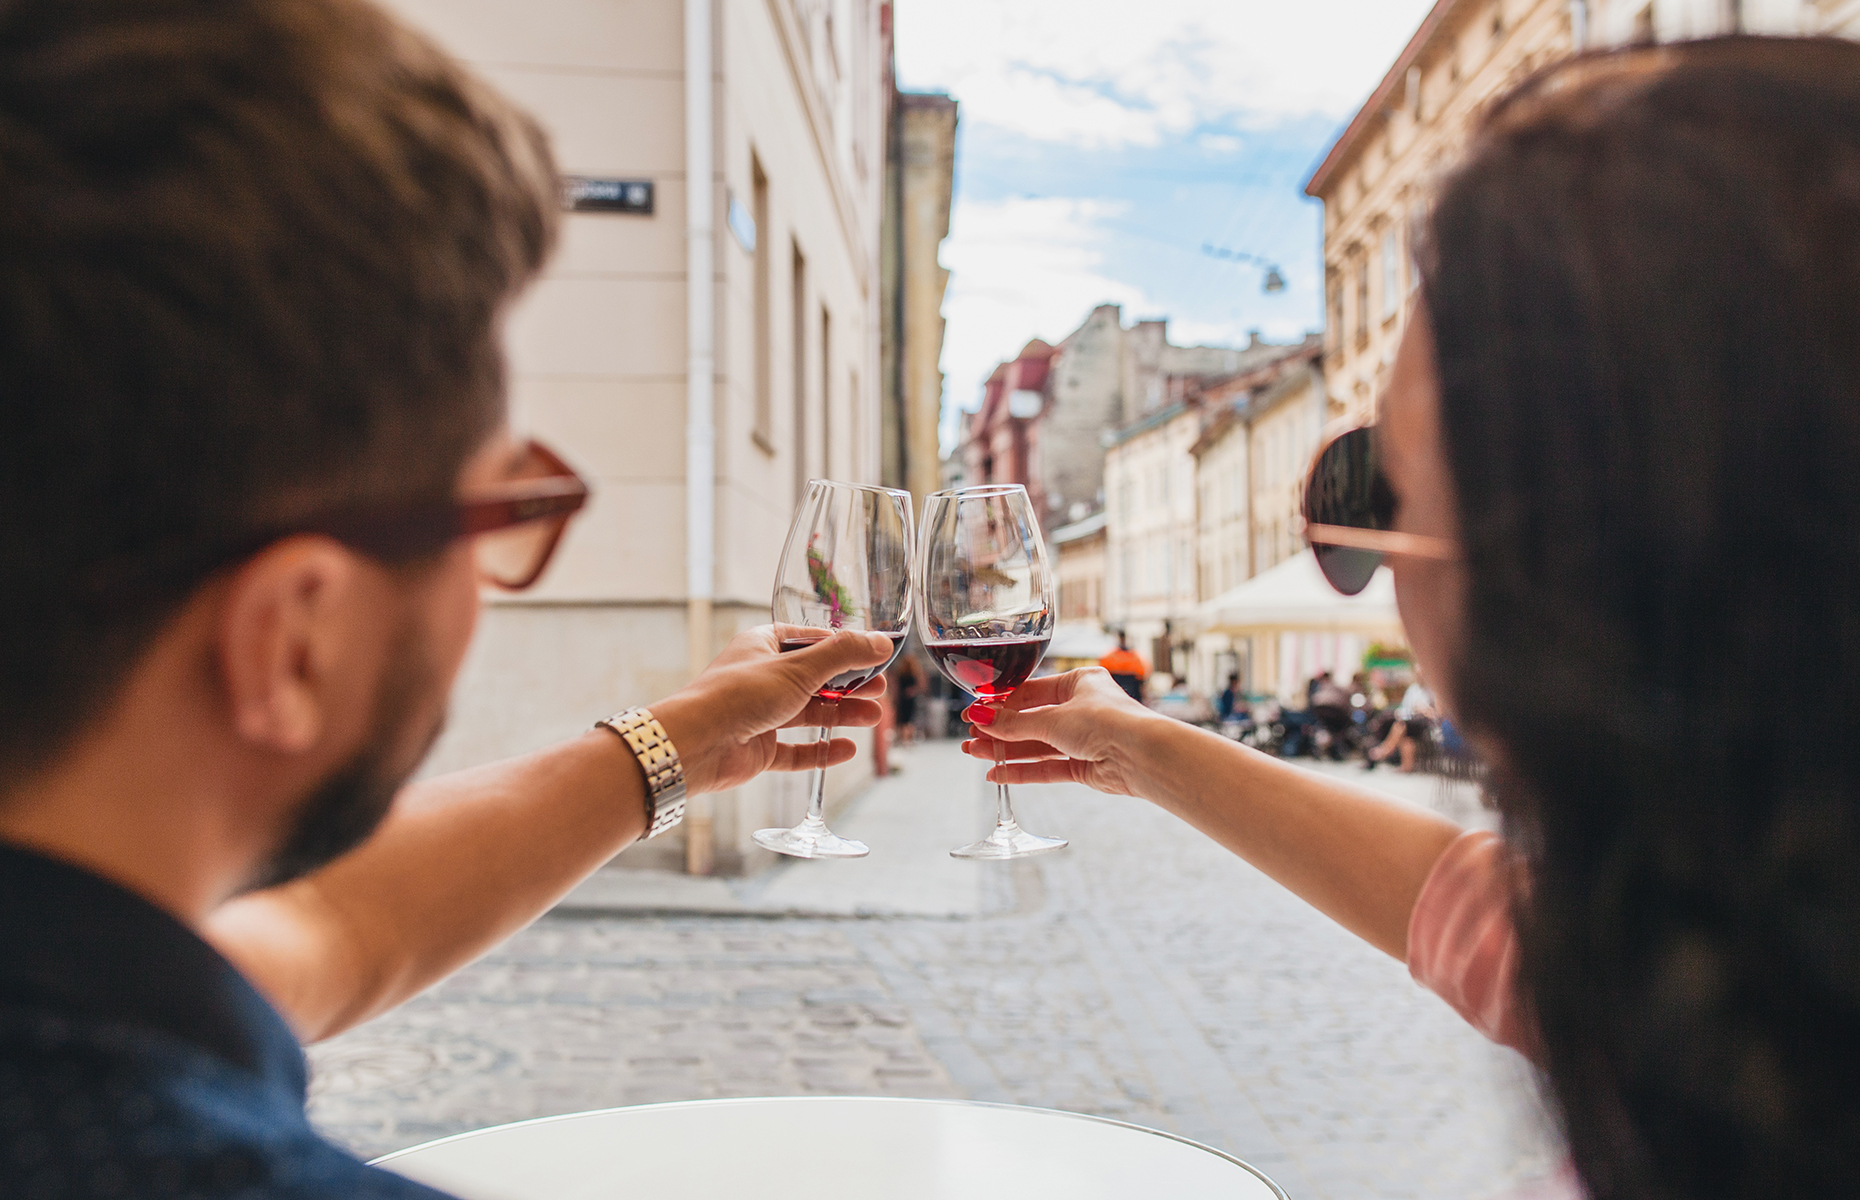 Couple on vacation with wine